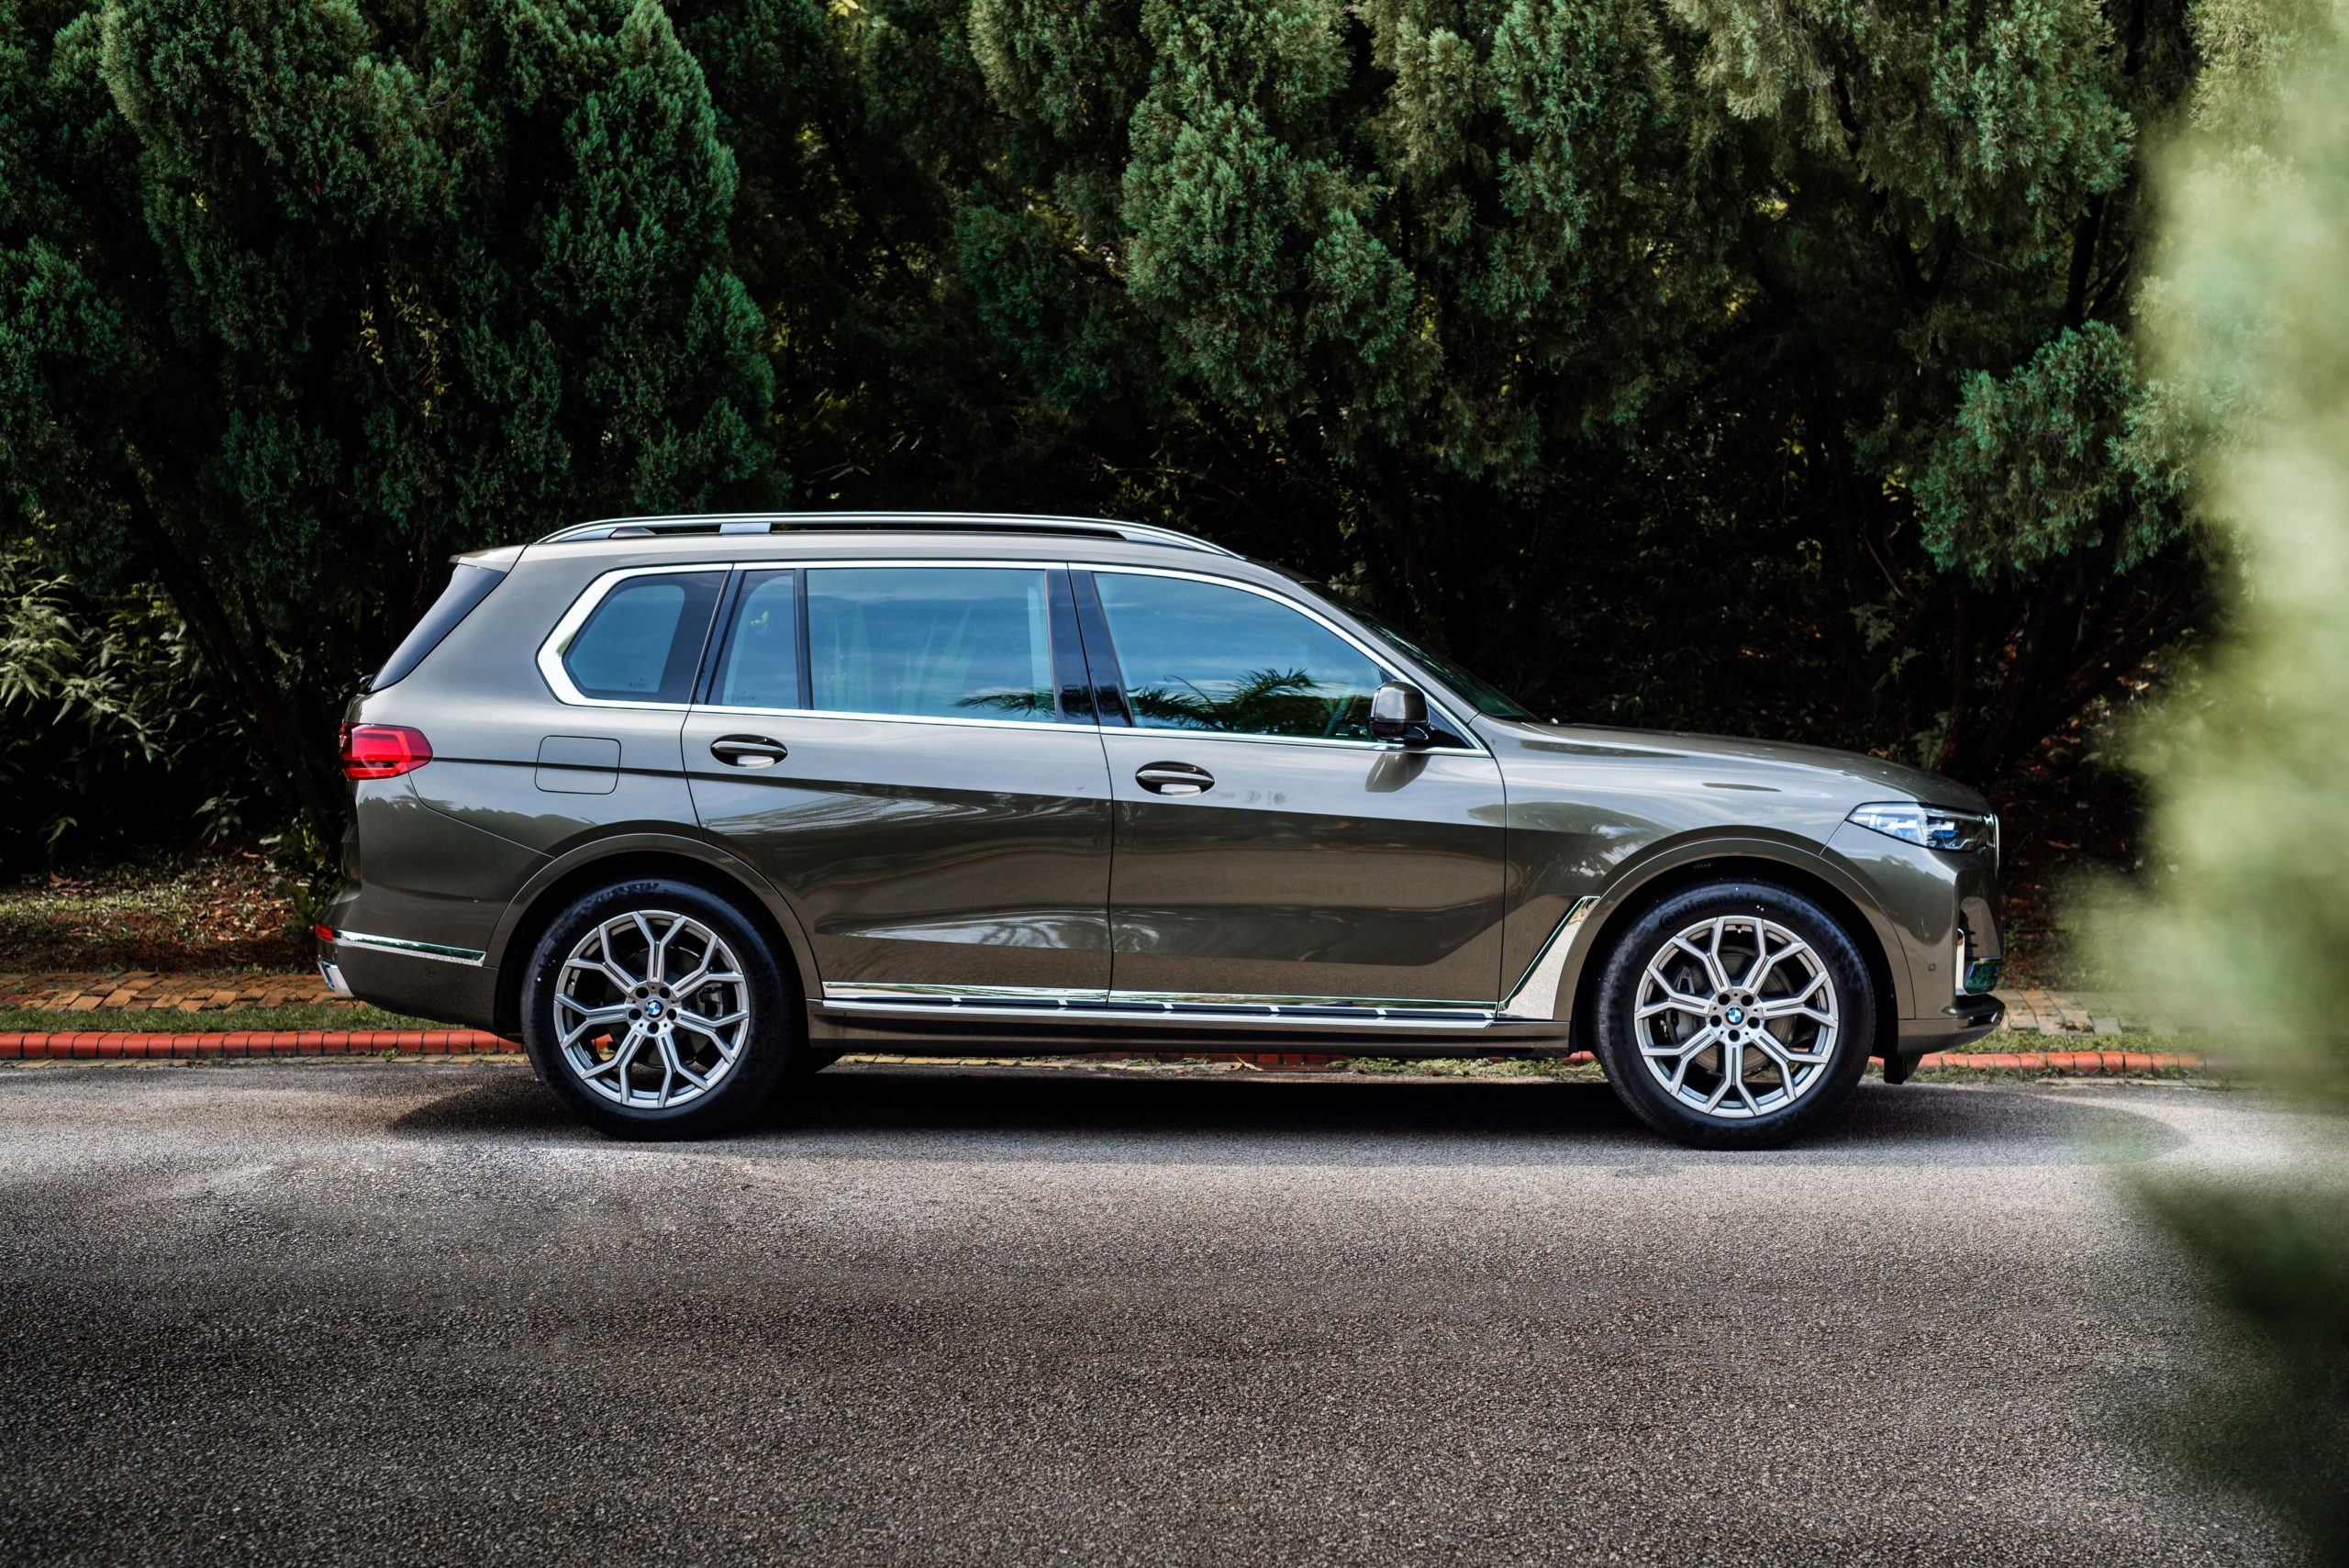 2021 BMW X7 xDrive40i Pure Excellence: Pricing's here, but how does it compare to other luxury SUV's?